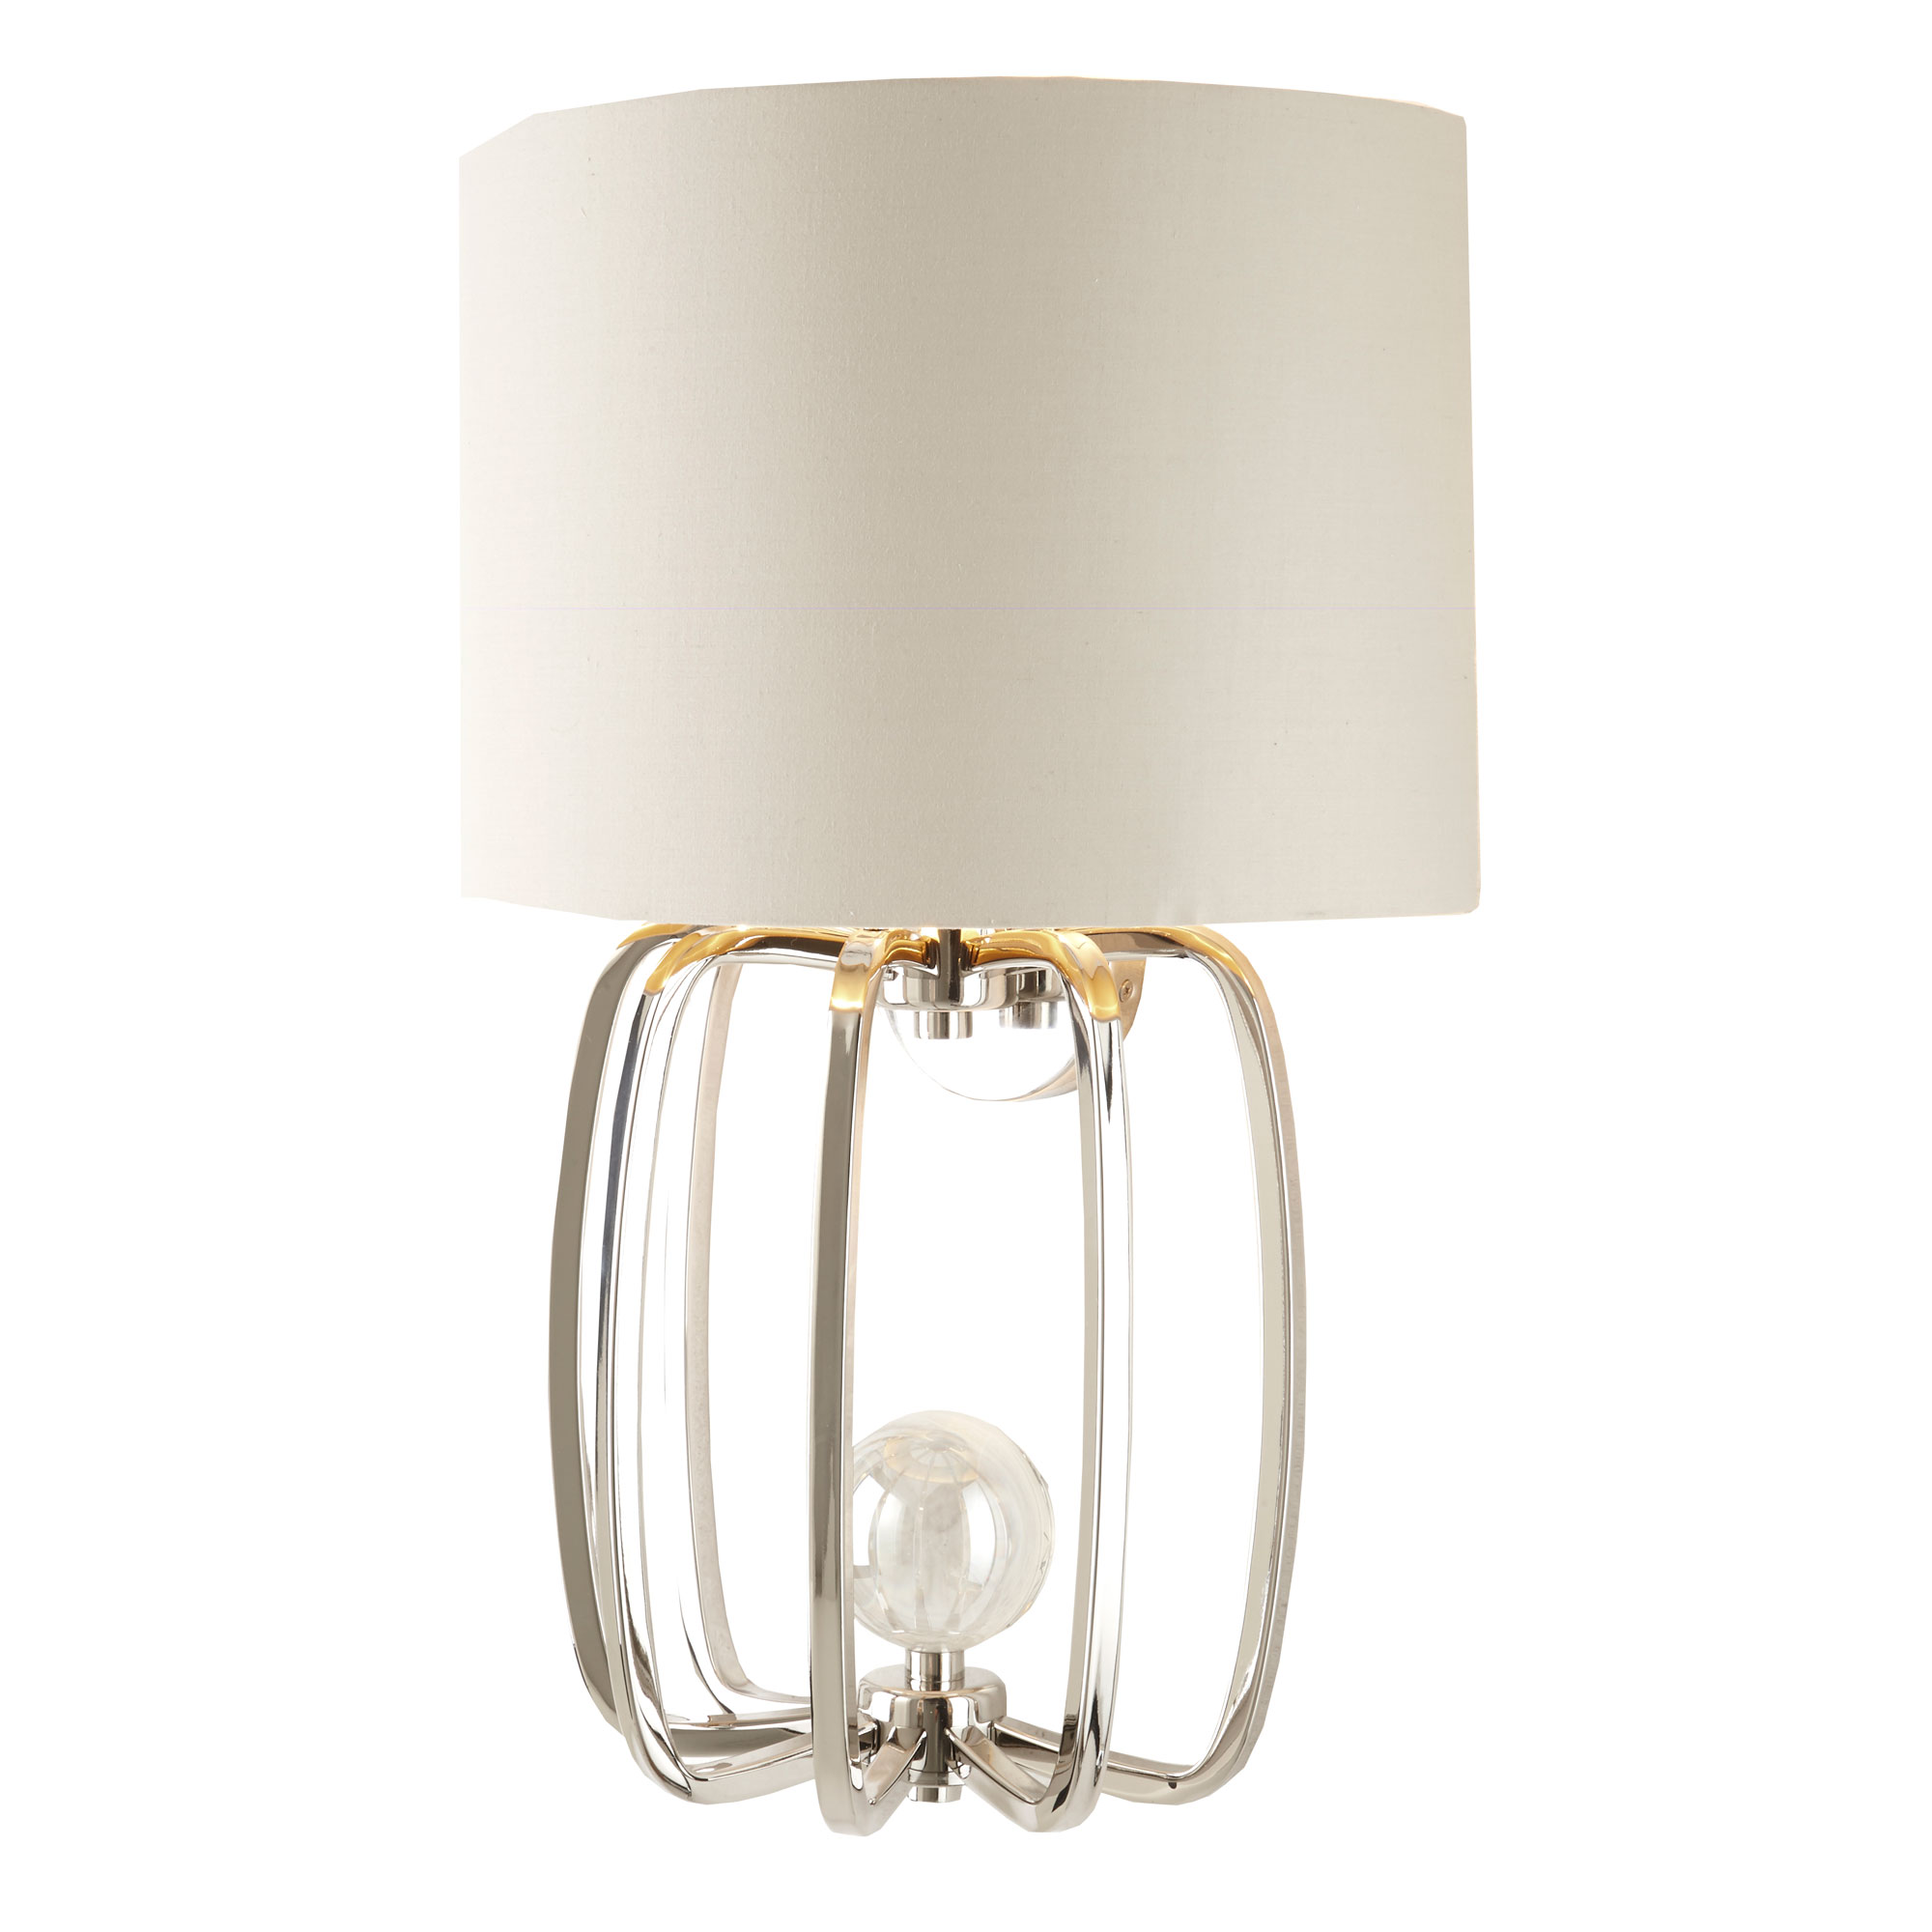 Cage Wall Lamp with crystal ball and nickel finish